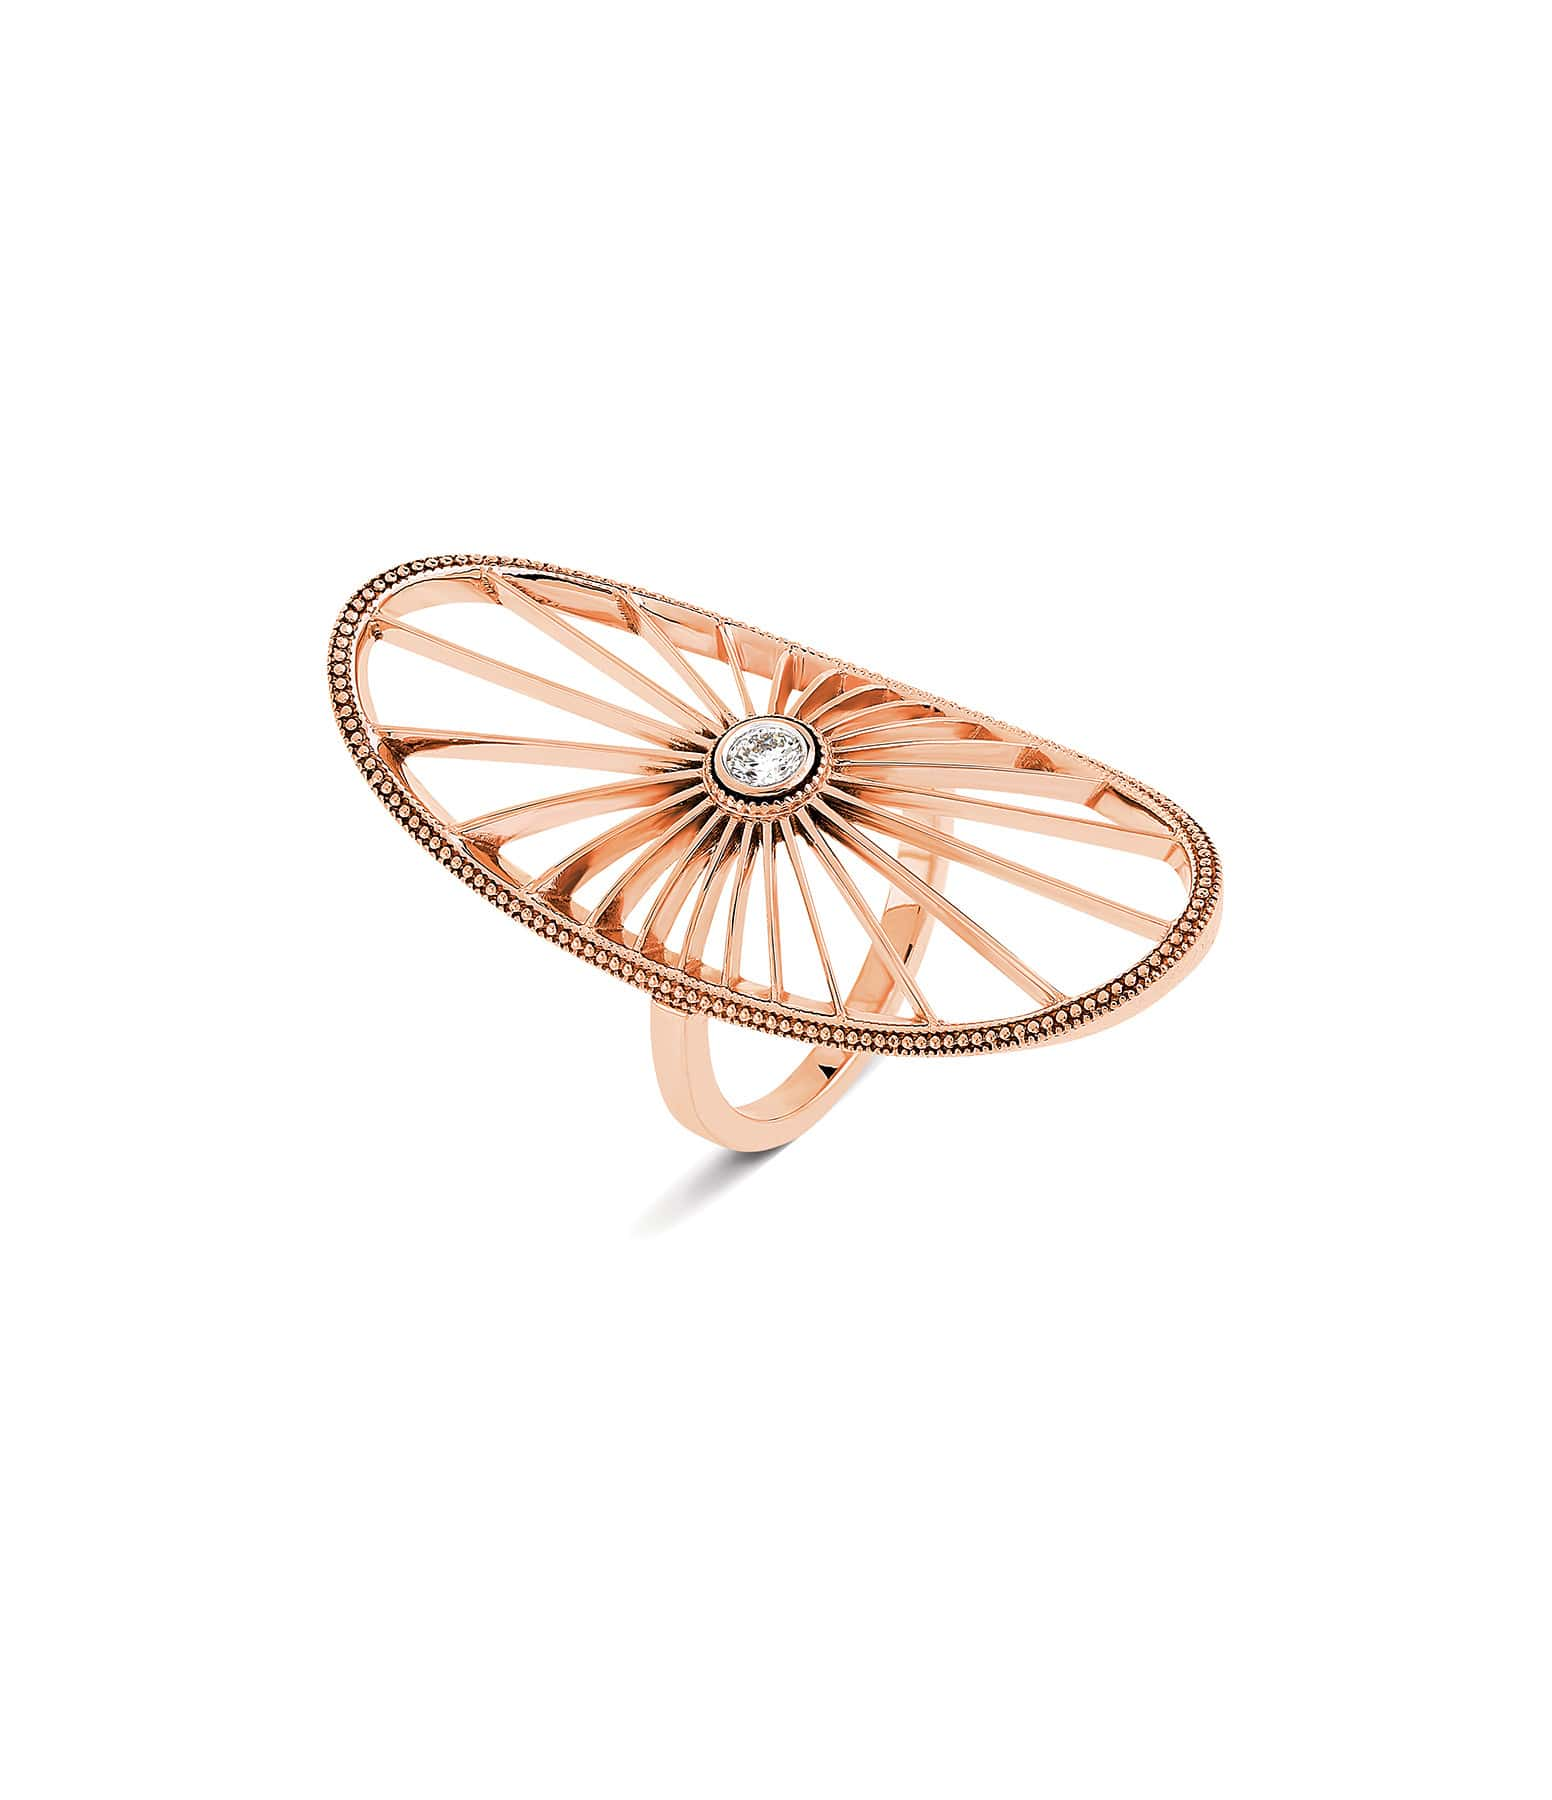 NAVA JOAILLERIE - Bague Cheyenne Ovale Diamants Or Rose